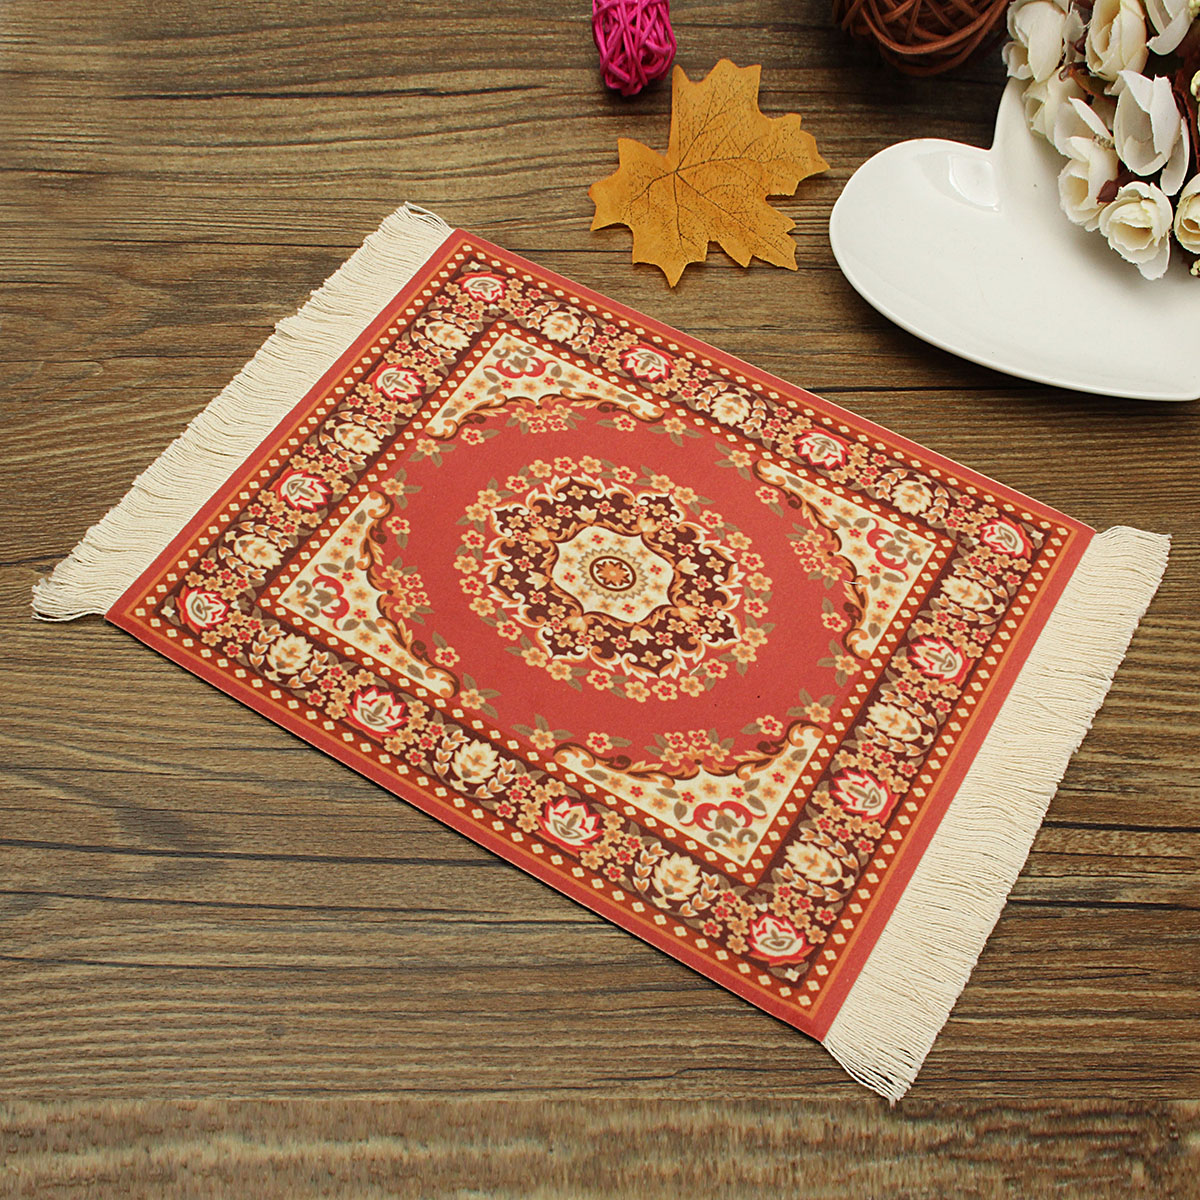 11''x7'' Persian Style Mini Woven Rug Mouse Pad Carpet Mouse Mat With Fringe